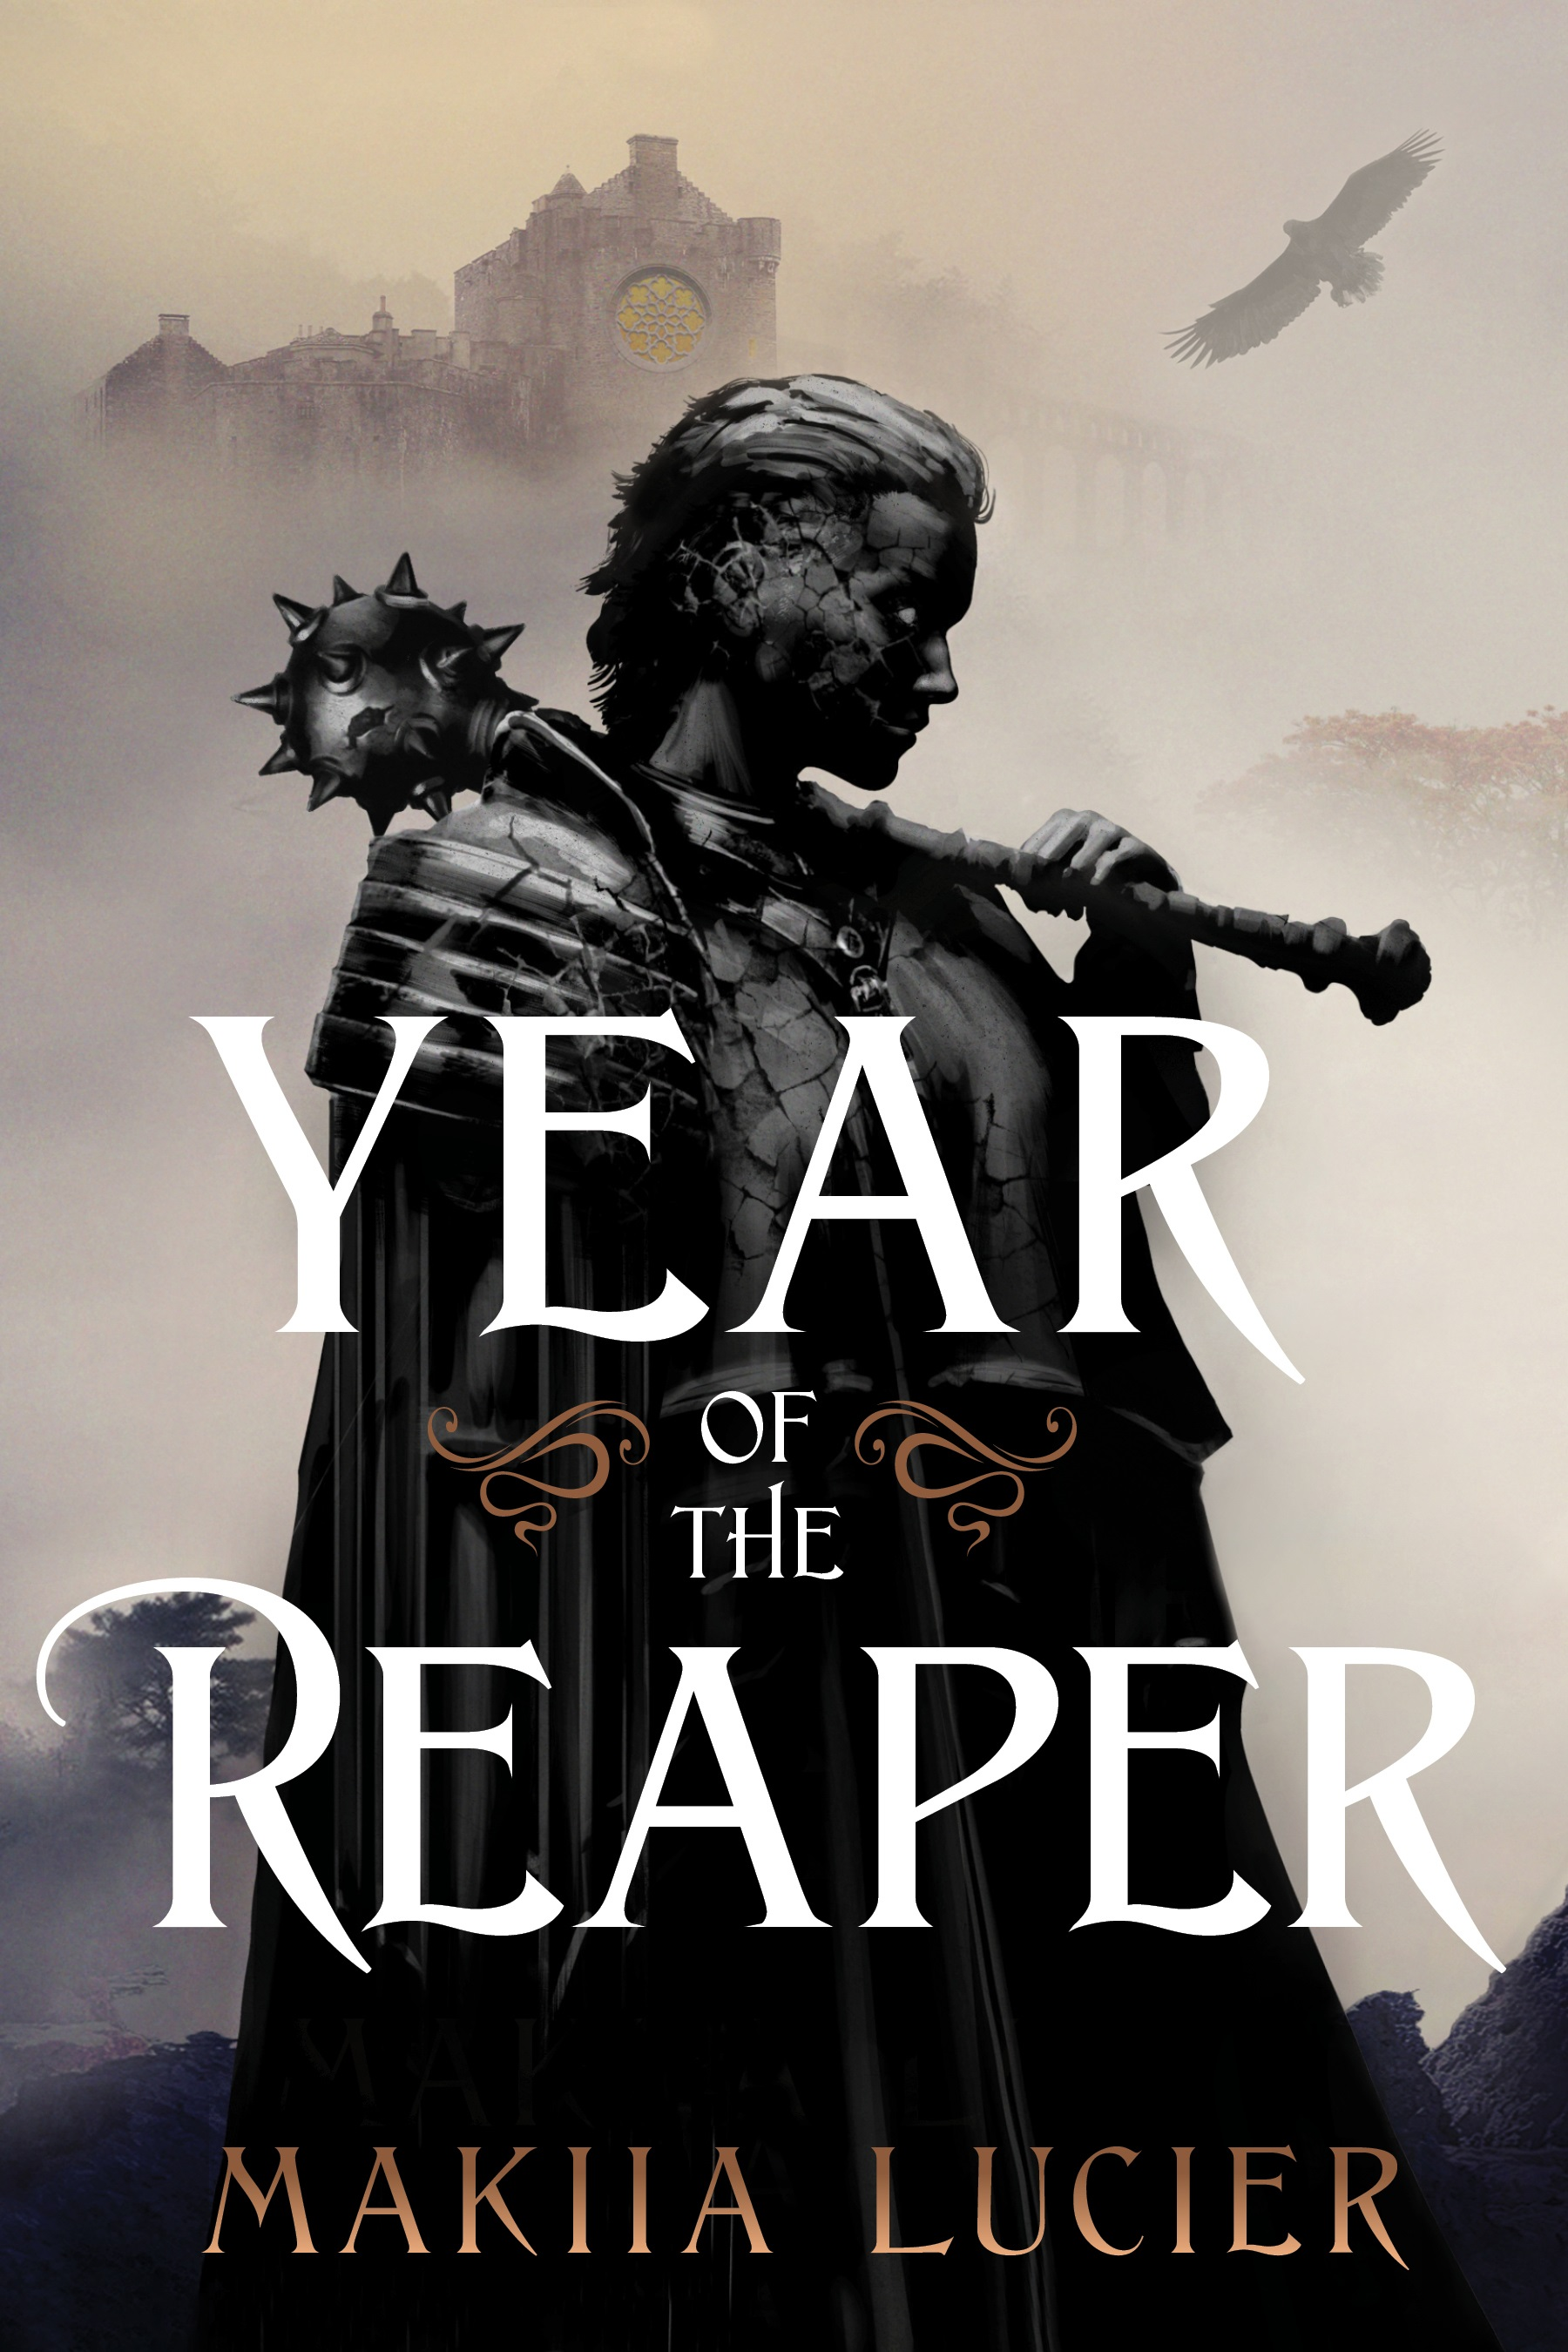 Year of the Reaper by Makiia Lucier